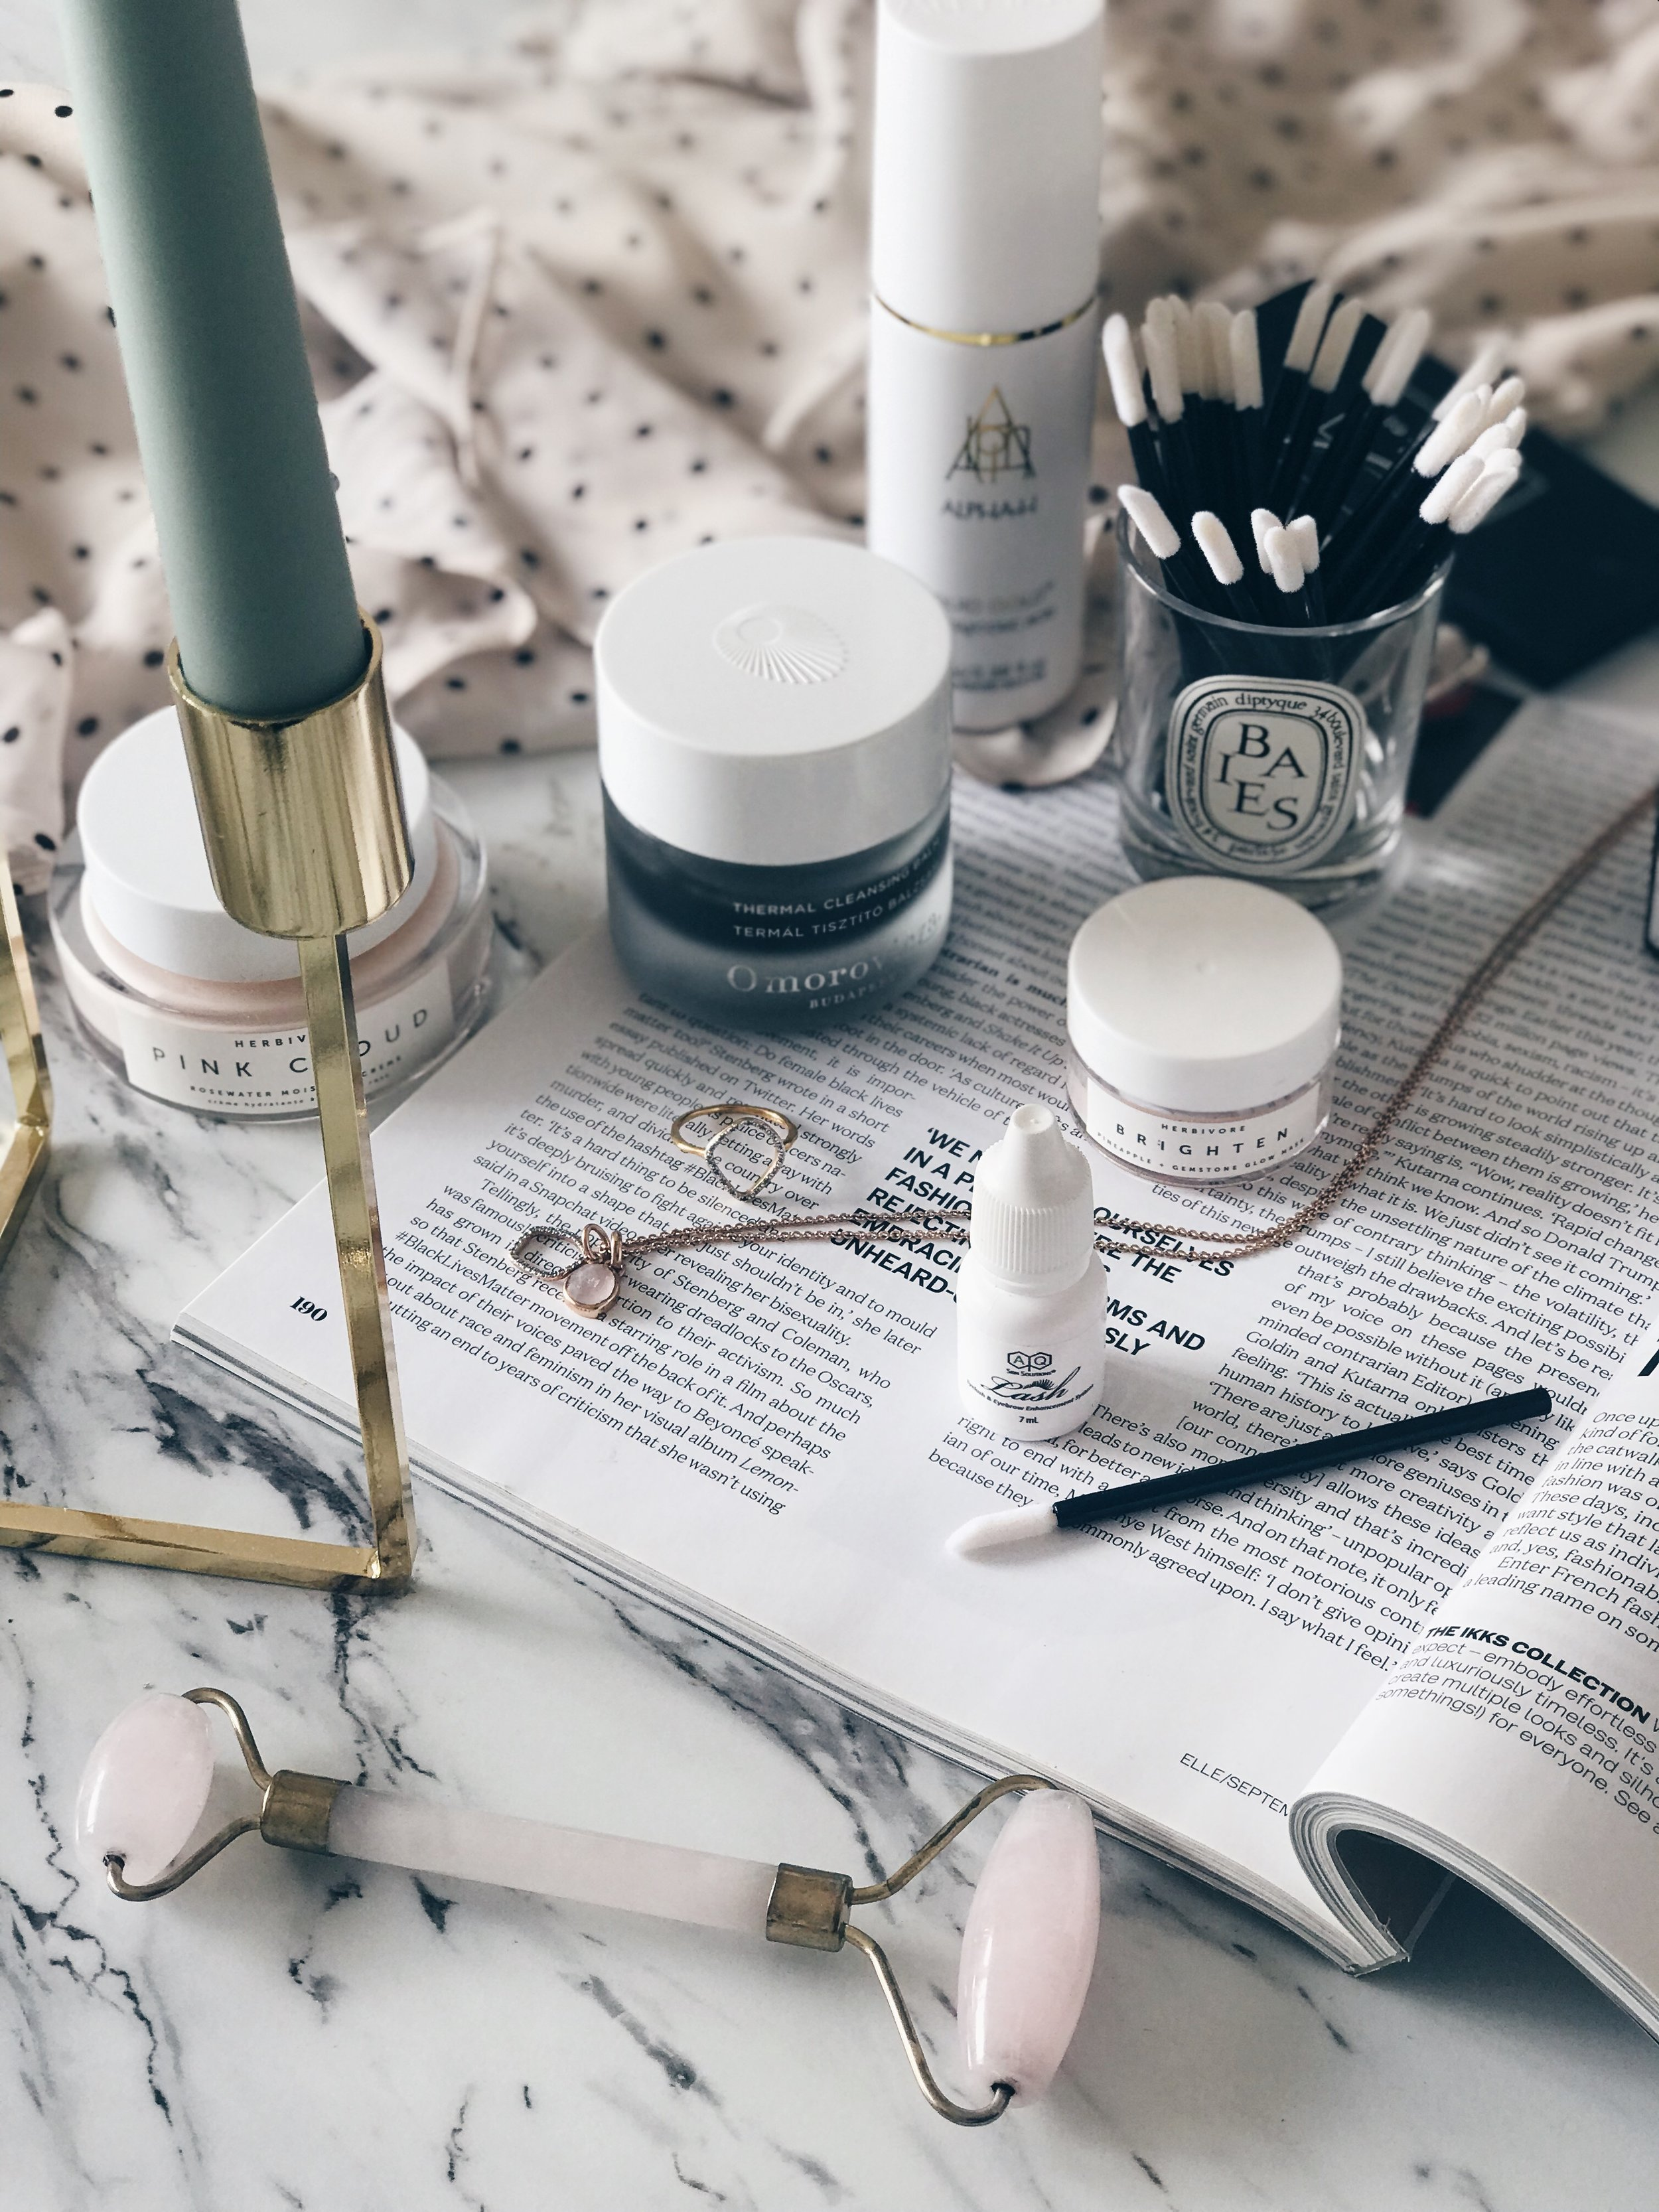 Bedtime Beaut Regime with AQ Skincare